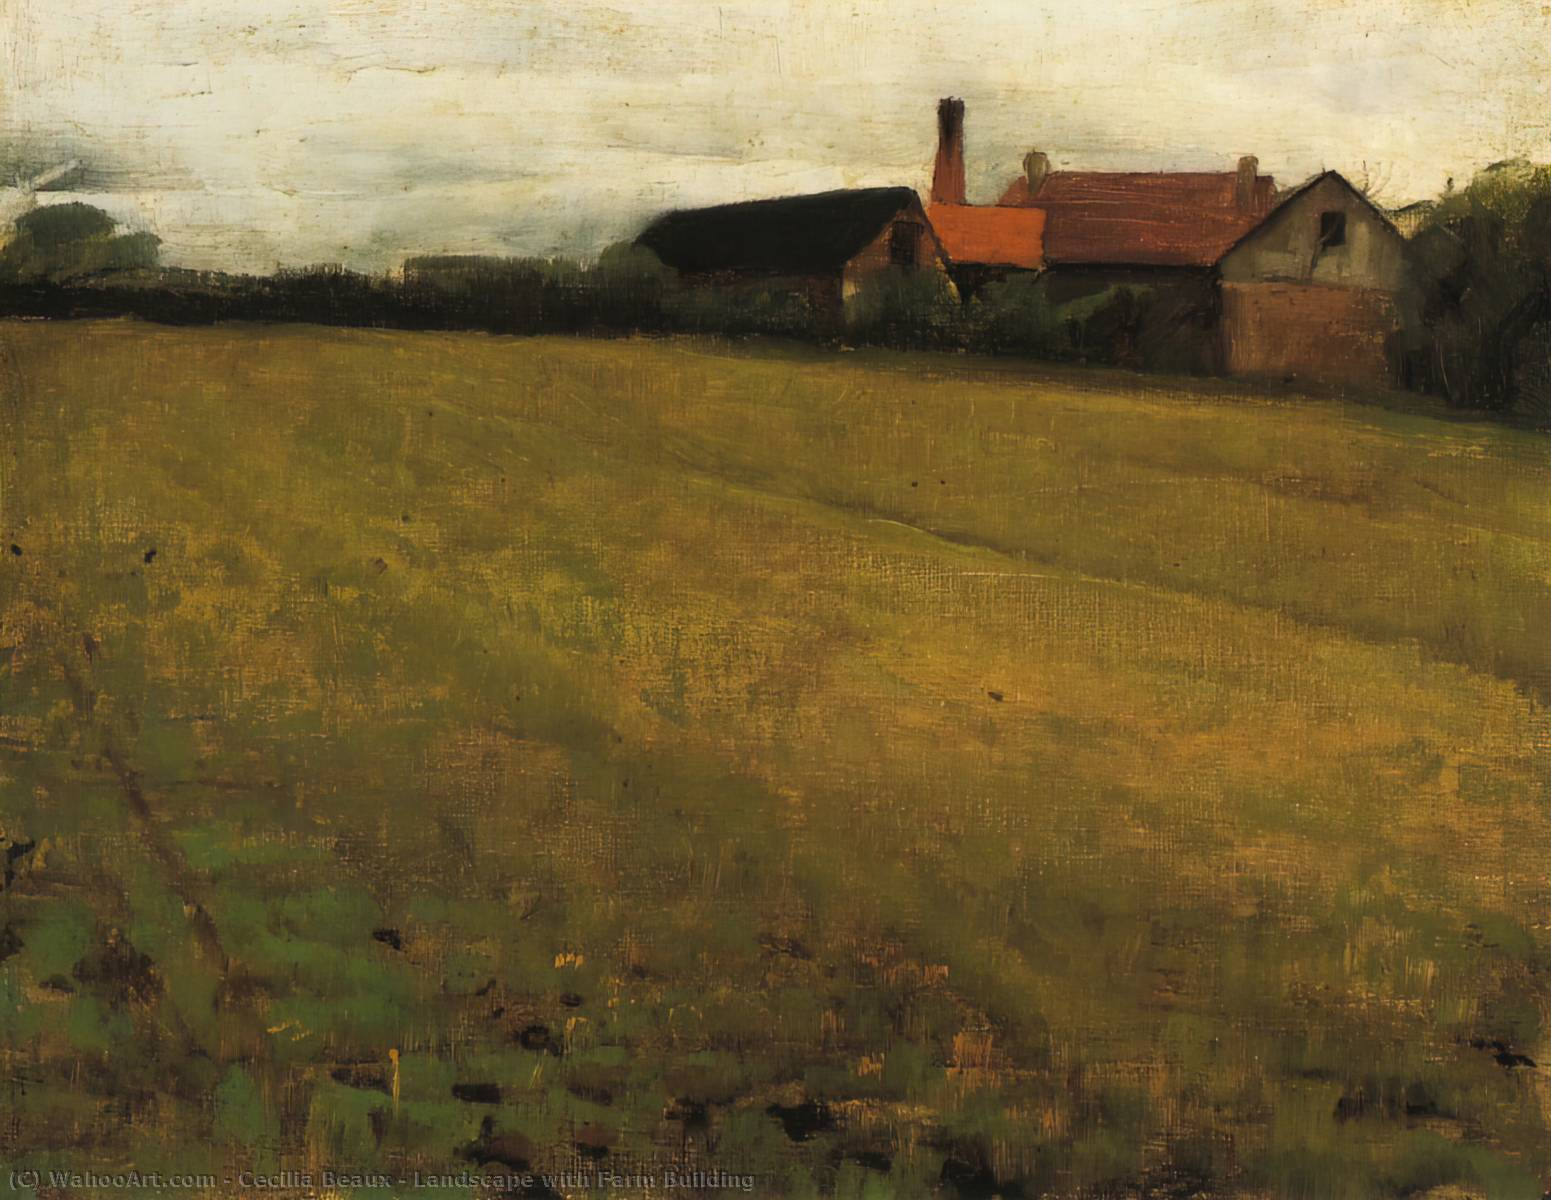 Landscape with Farm Building, Oil On Canvas by Cecilia Beaux (1855-1942, United States)